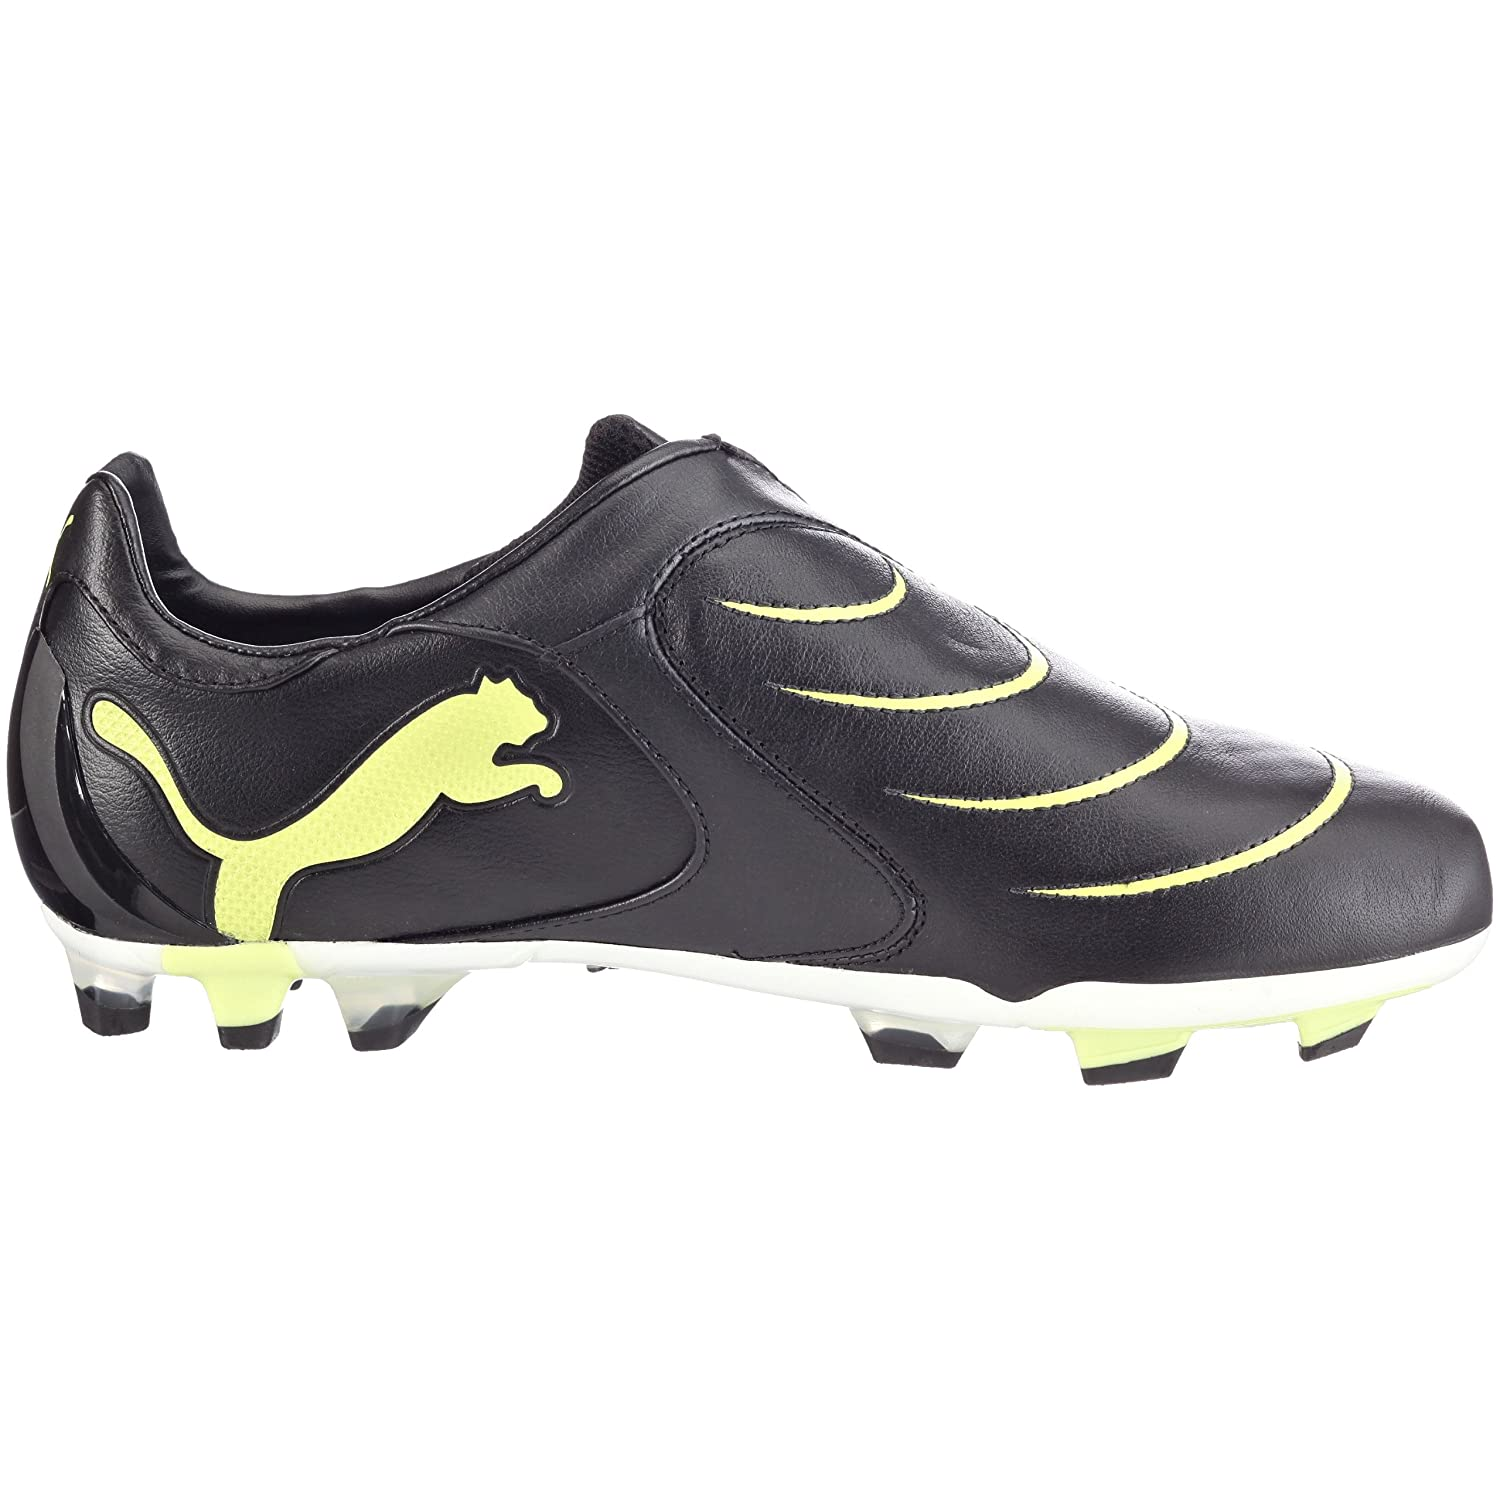 Puma PowerCat 2.10 FG 10190103, Football Homme, SCHWARZ, 40: Amazon.fr:  Chaussures et Sacs